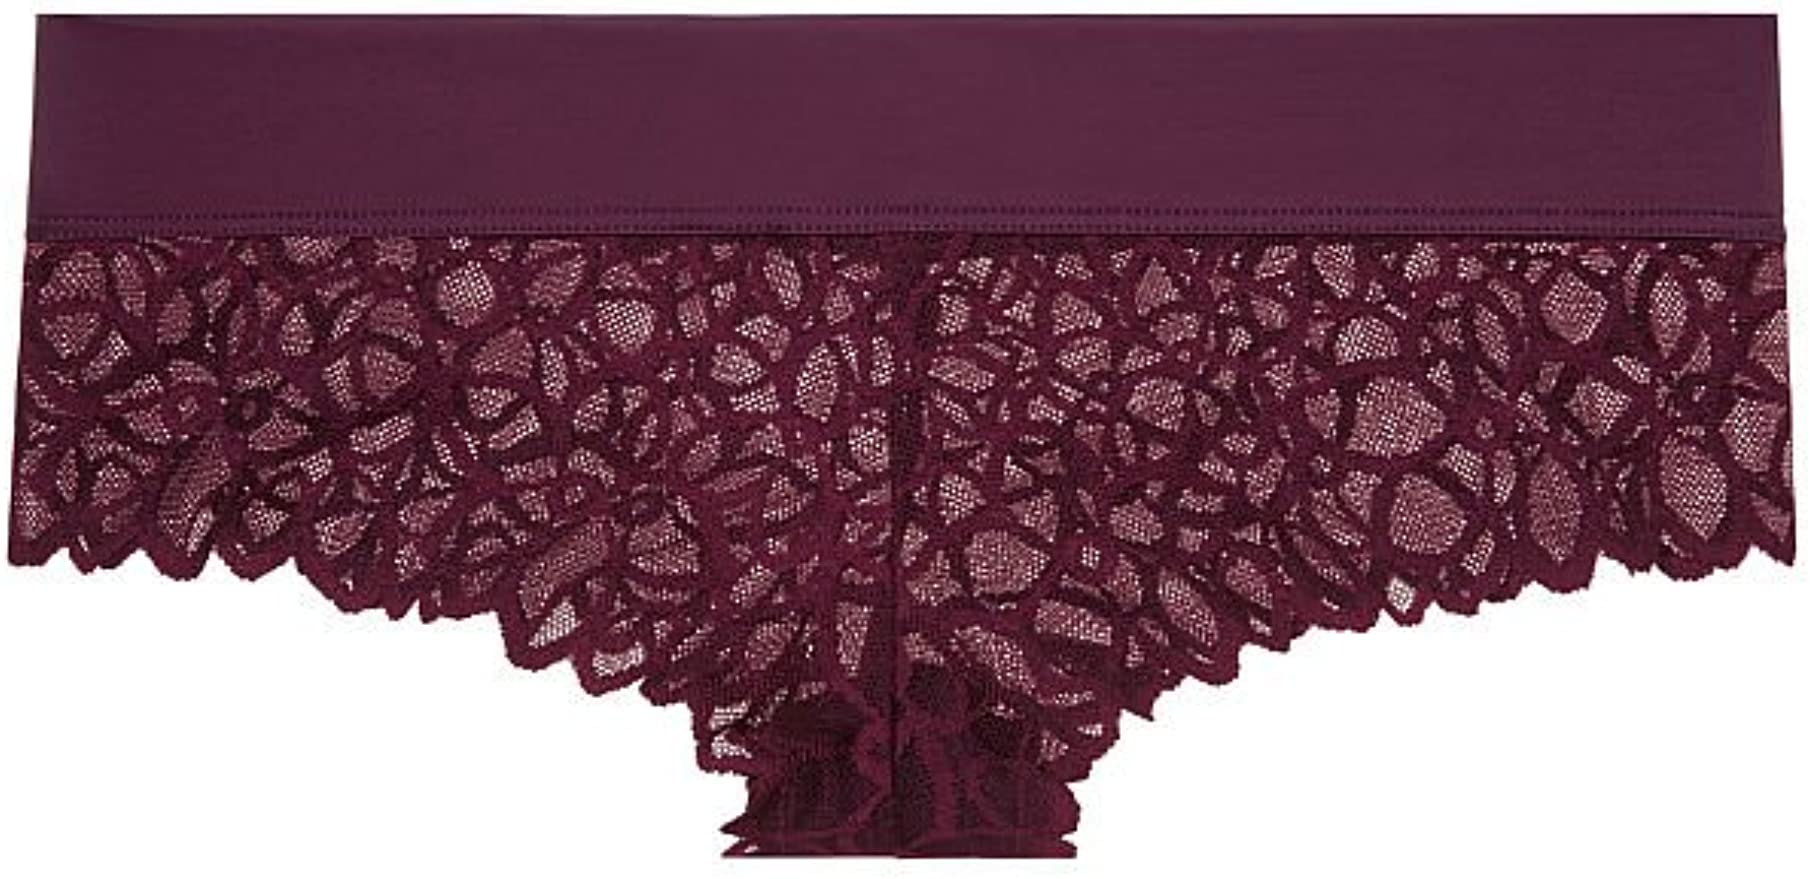 PINK Victoria/'s Secret Merlot Cherry Logo X-SMALL Allover Lace Cheekster Panty